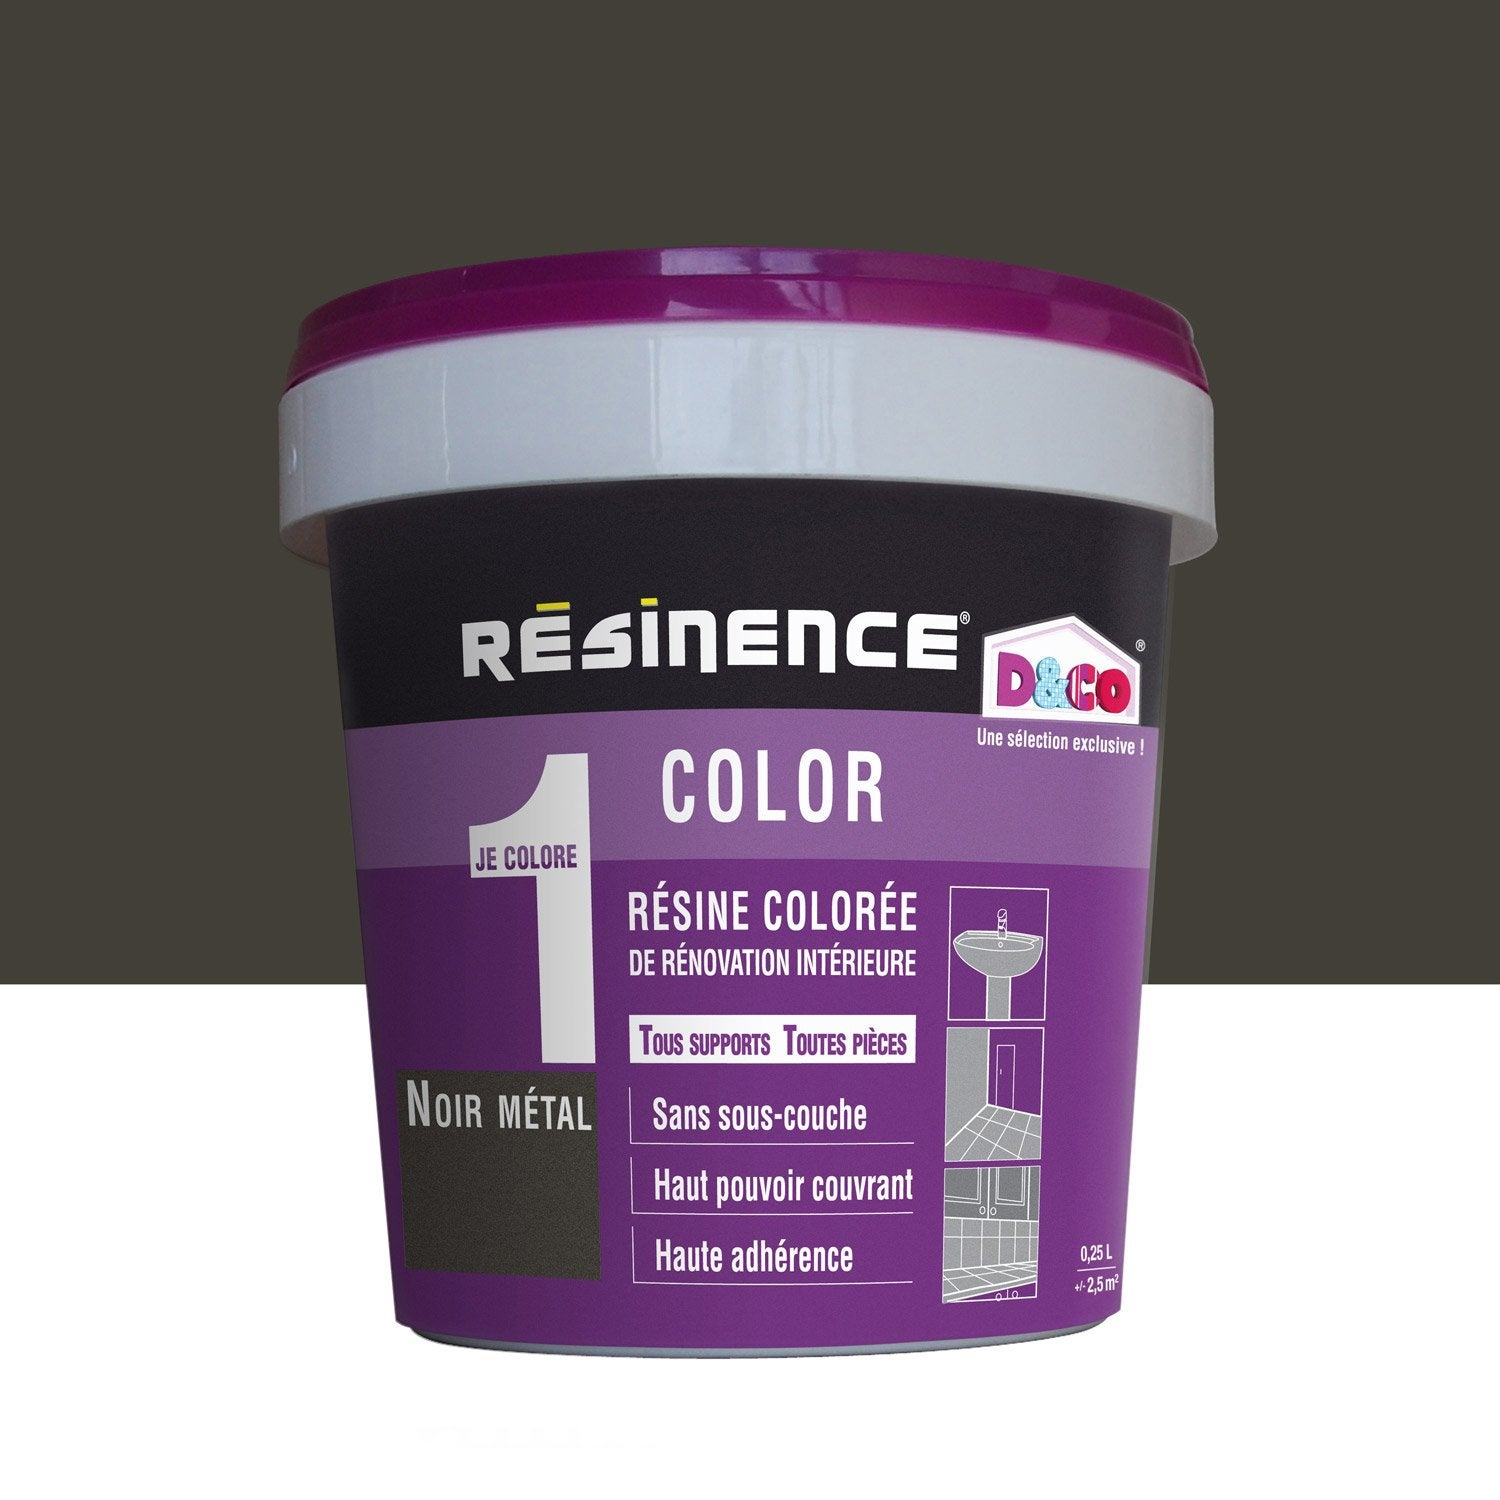 R sine color e color resinence noir m tal l leroy merlin for Peinture resinence color